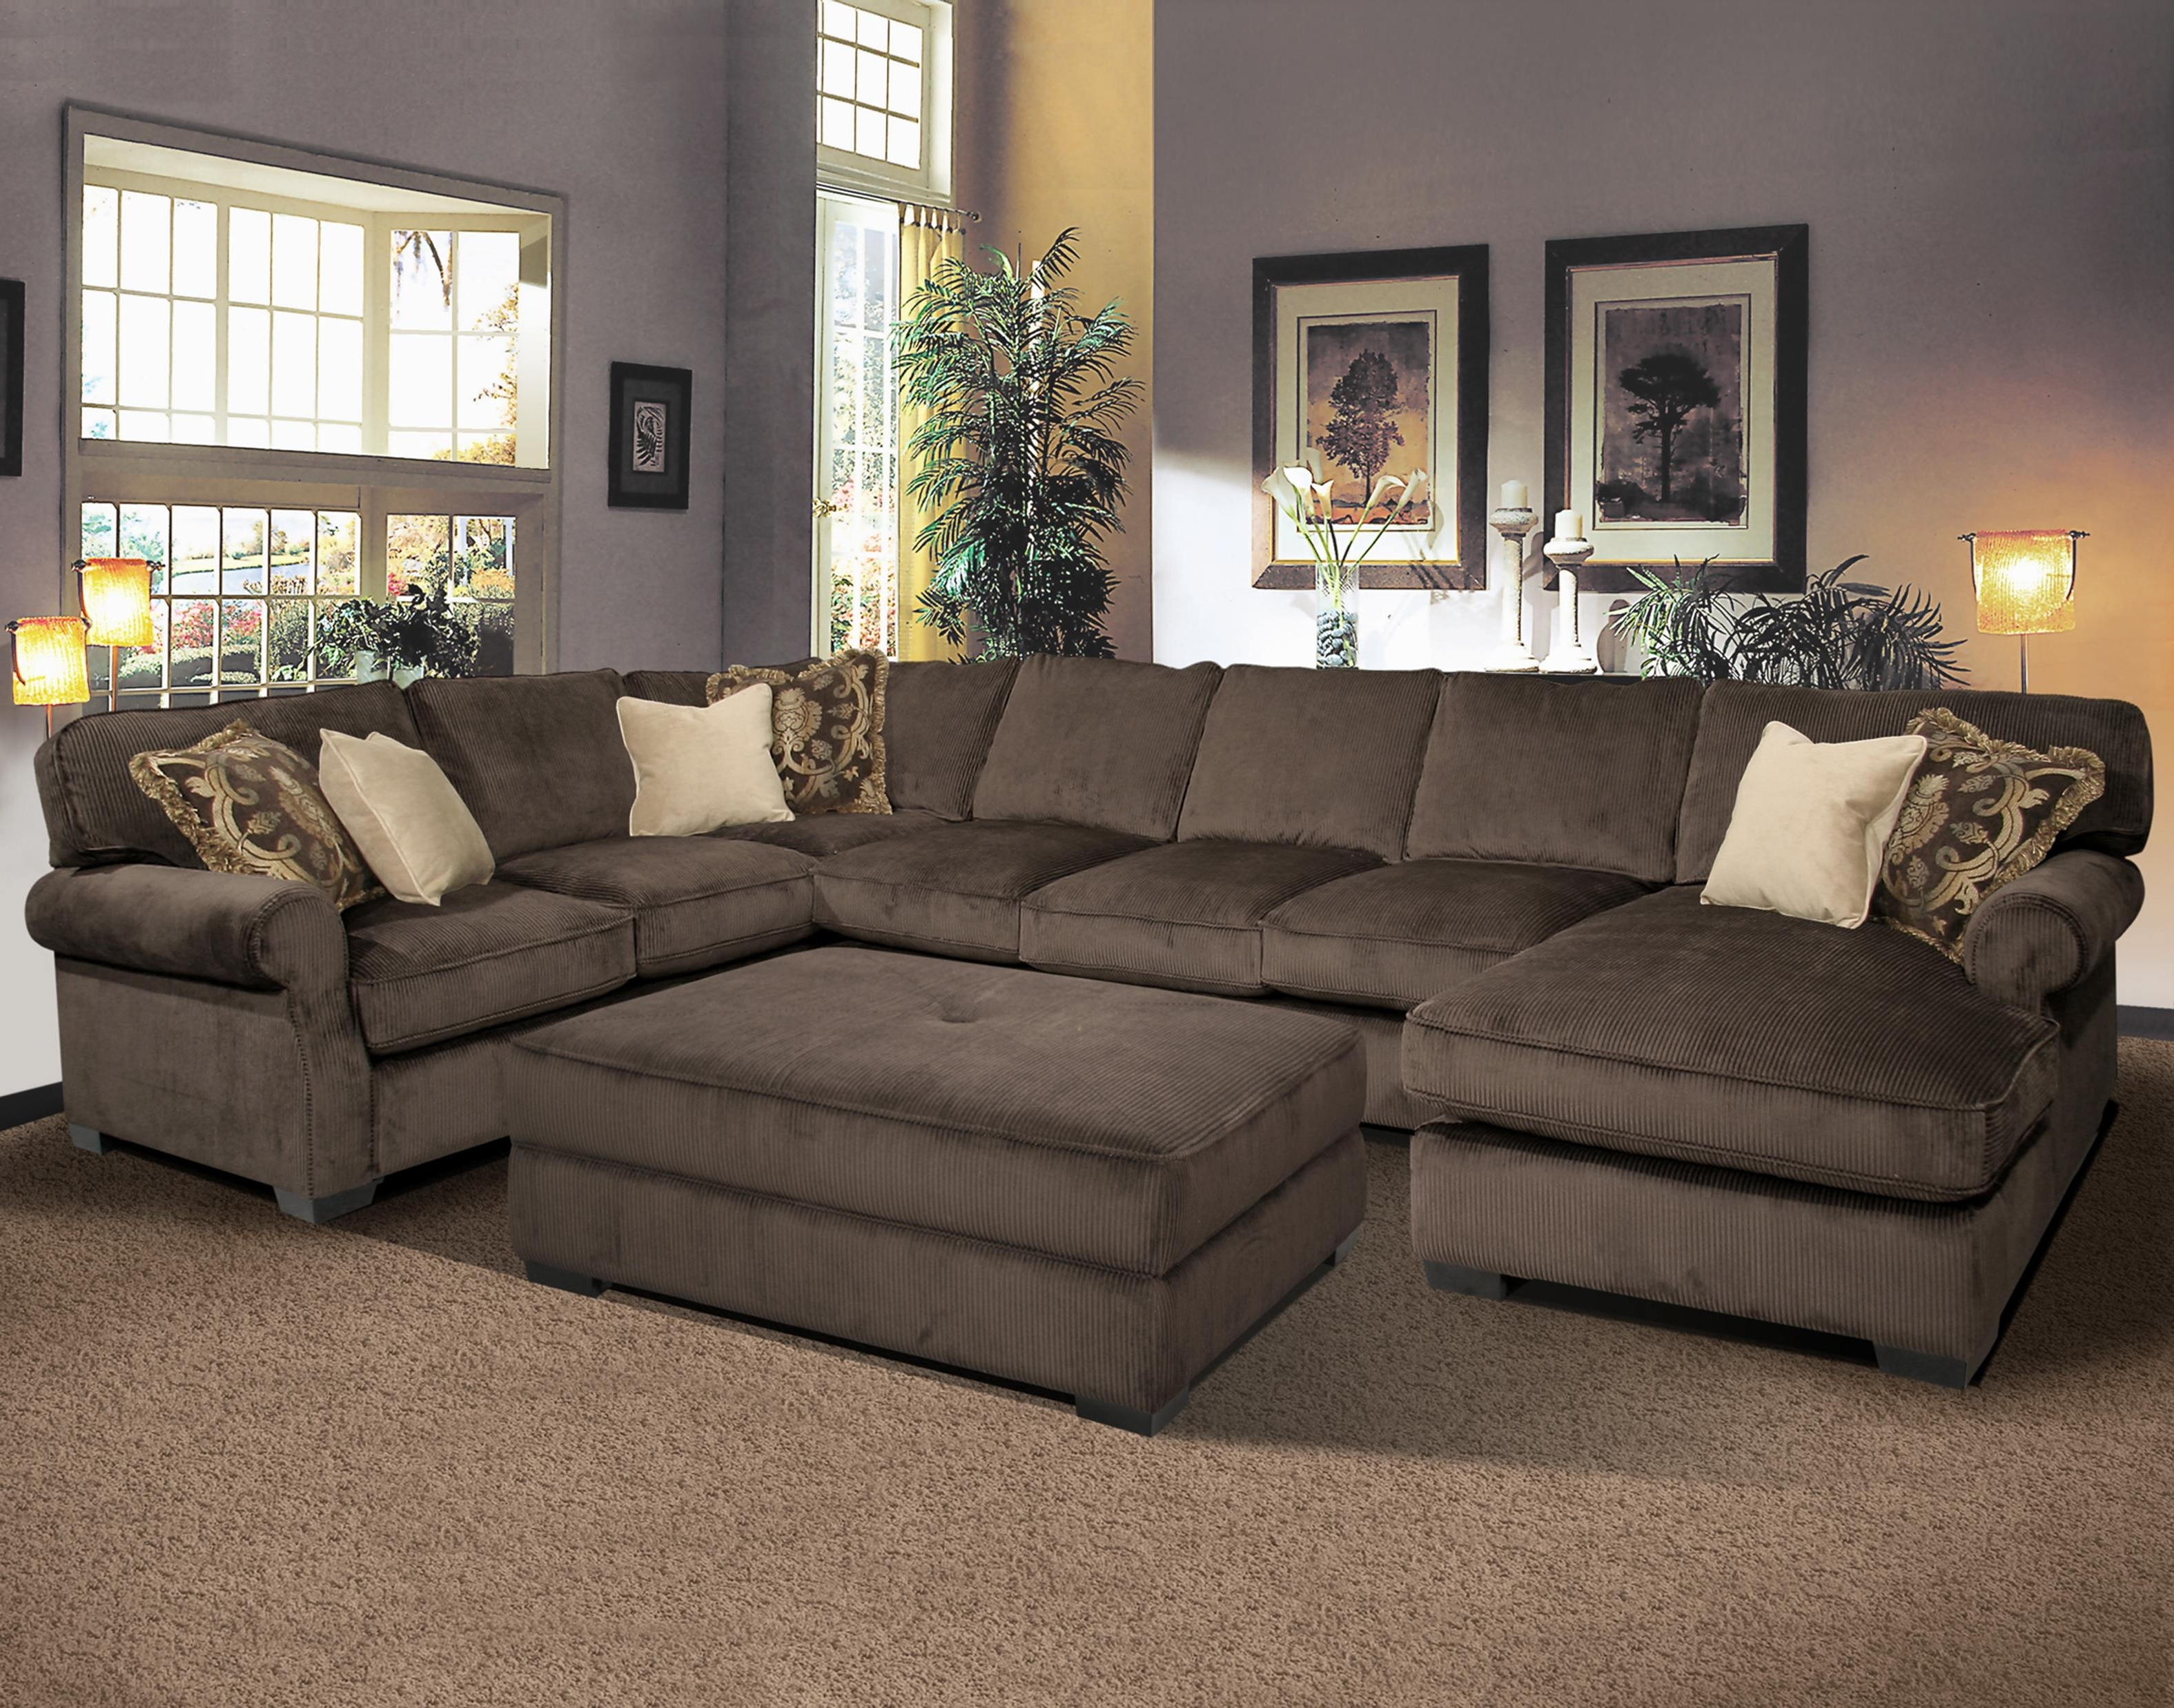 Well Known Sofa : Sectional Slipcovers Long Couches For Sale Small L Couch With Regard To On Sale Sectional Sofas (View 19 of 20)